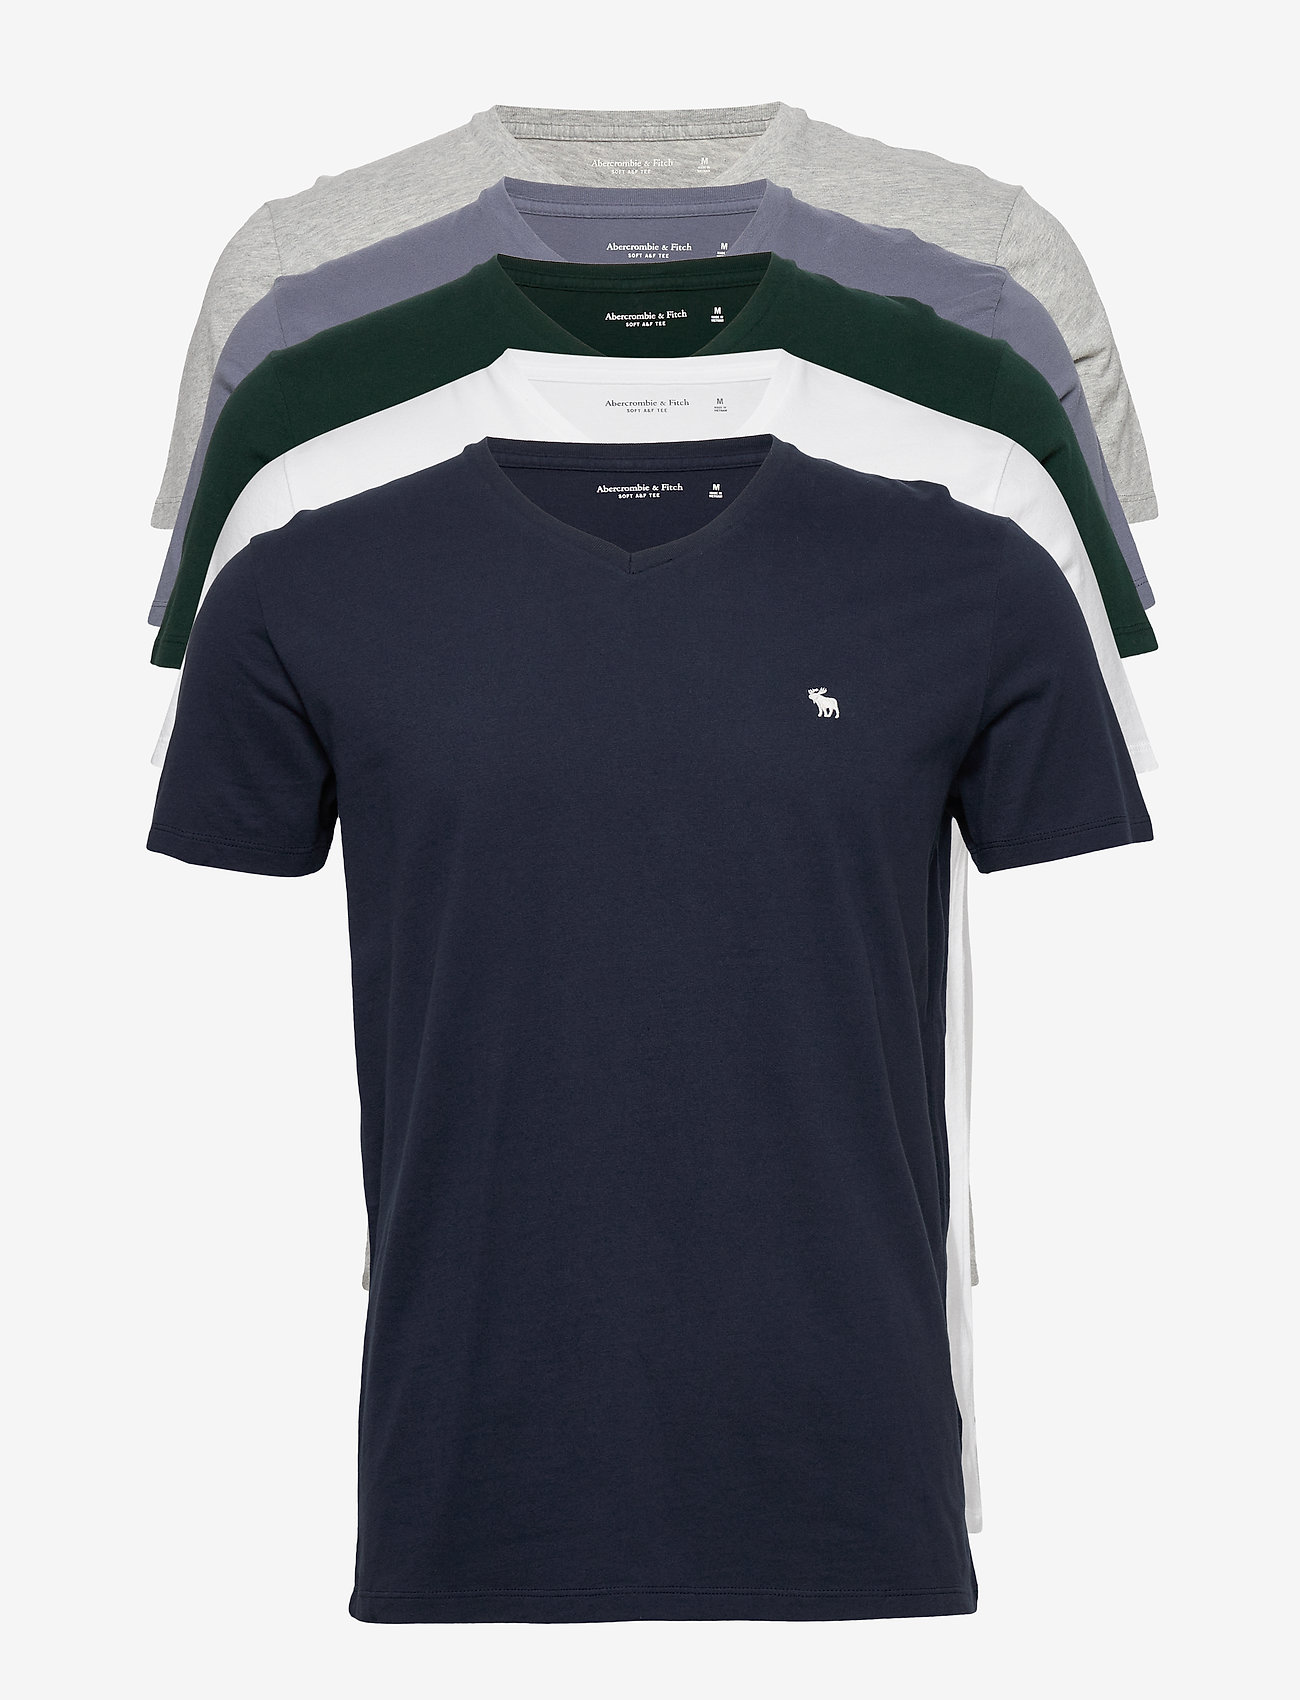 Abercrombie & Fitch - ANF MENS KNITS - multipack - navy dd - 0